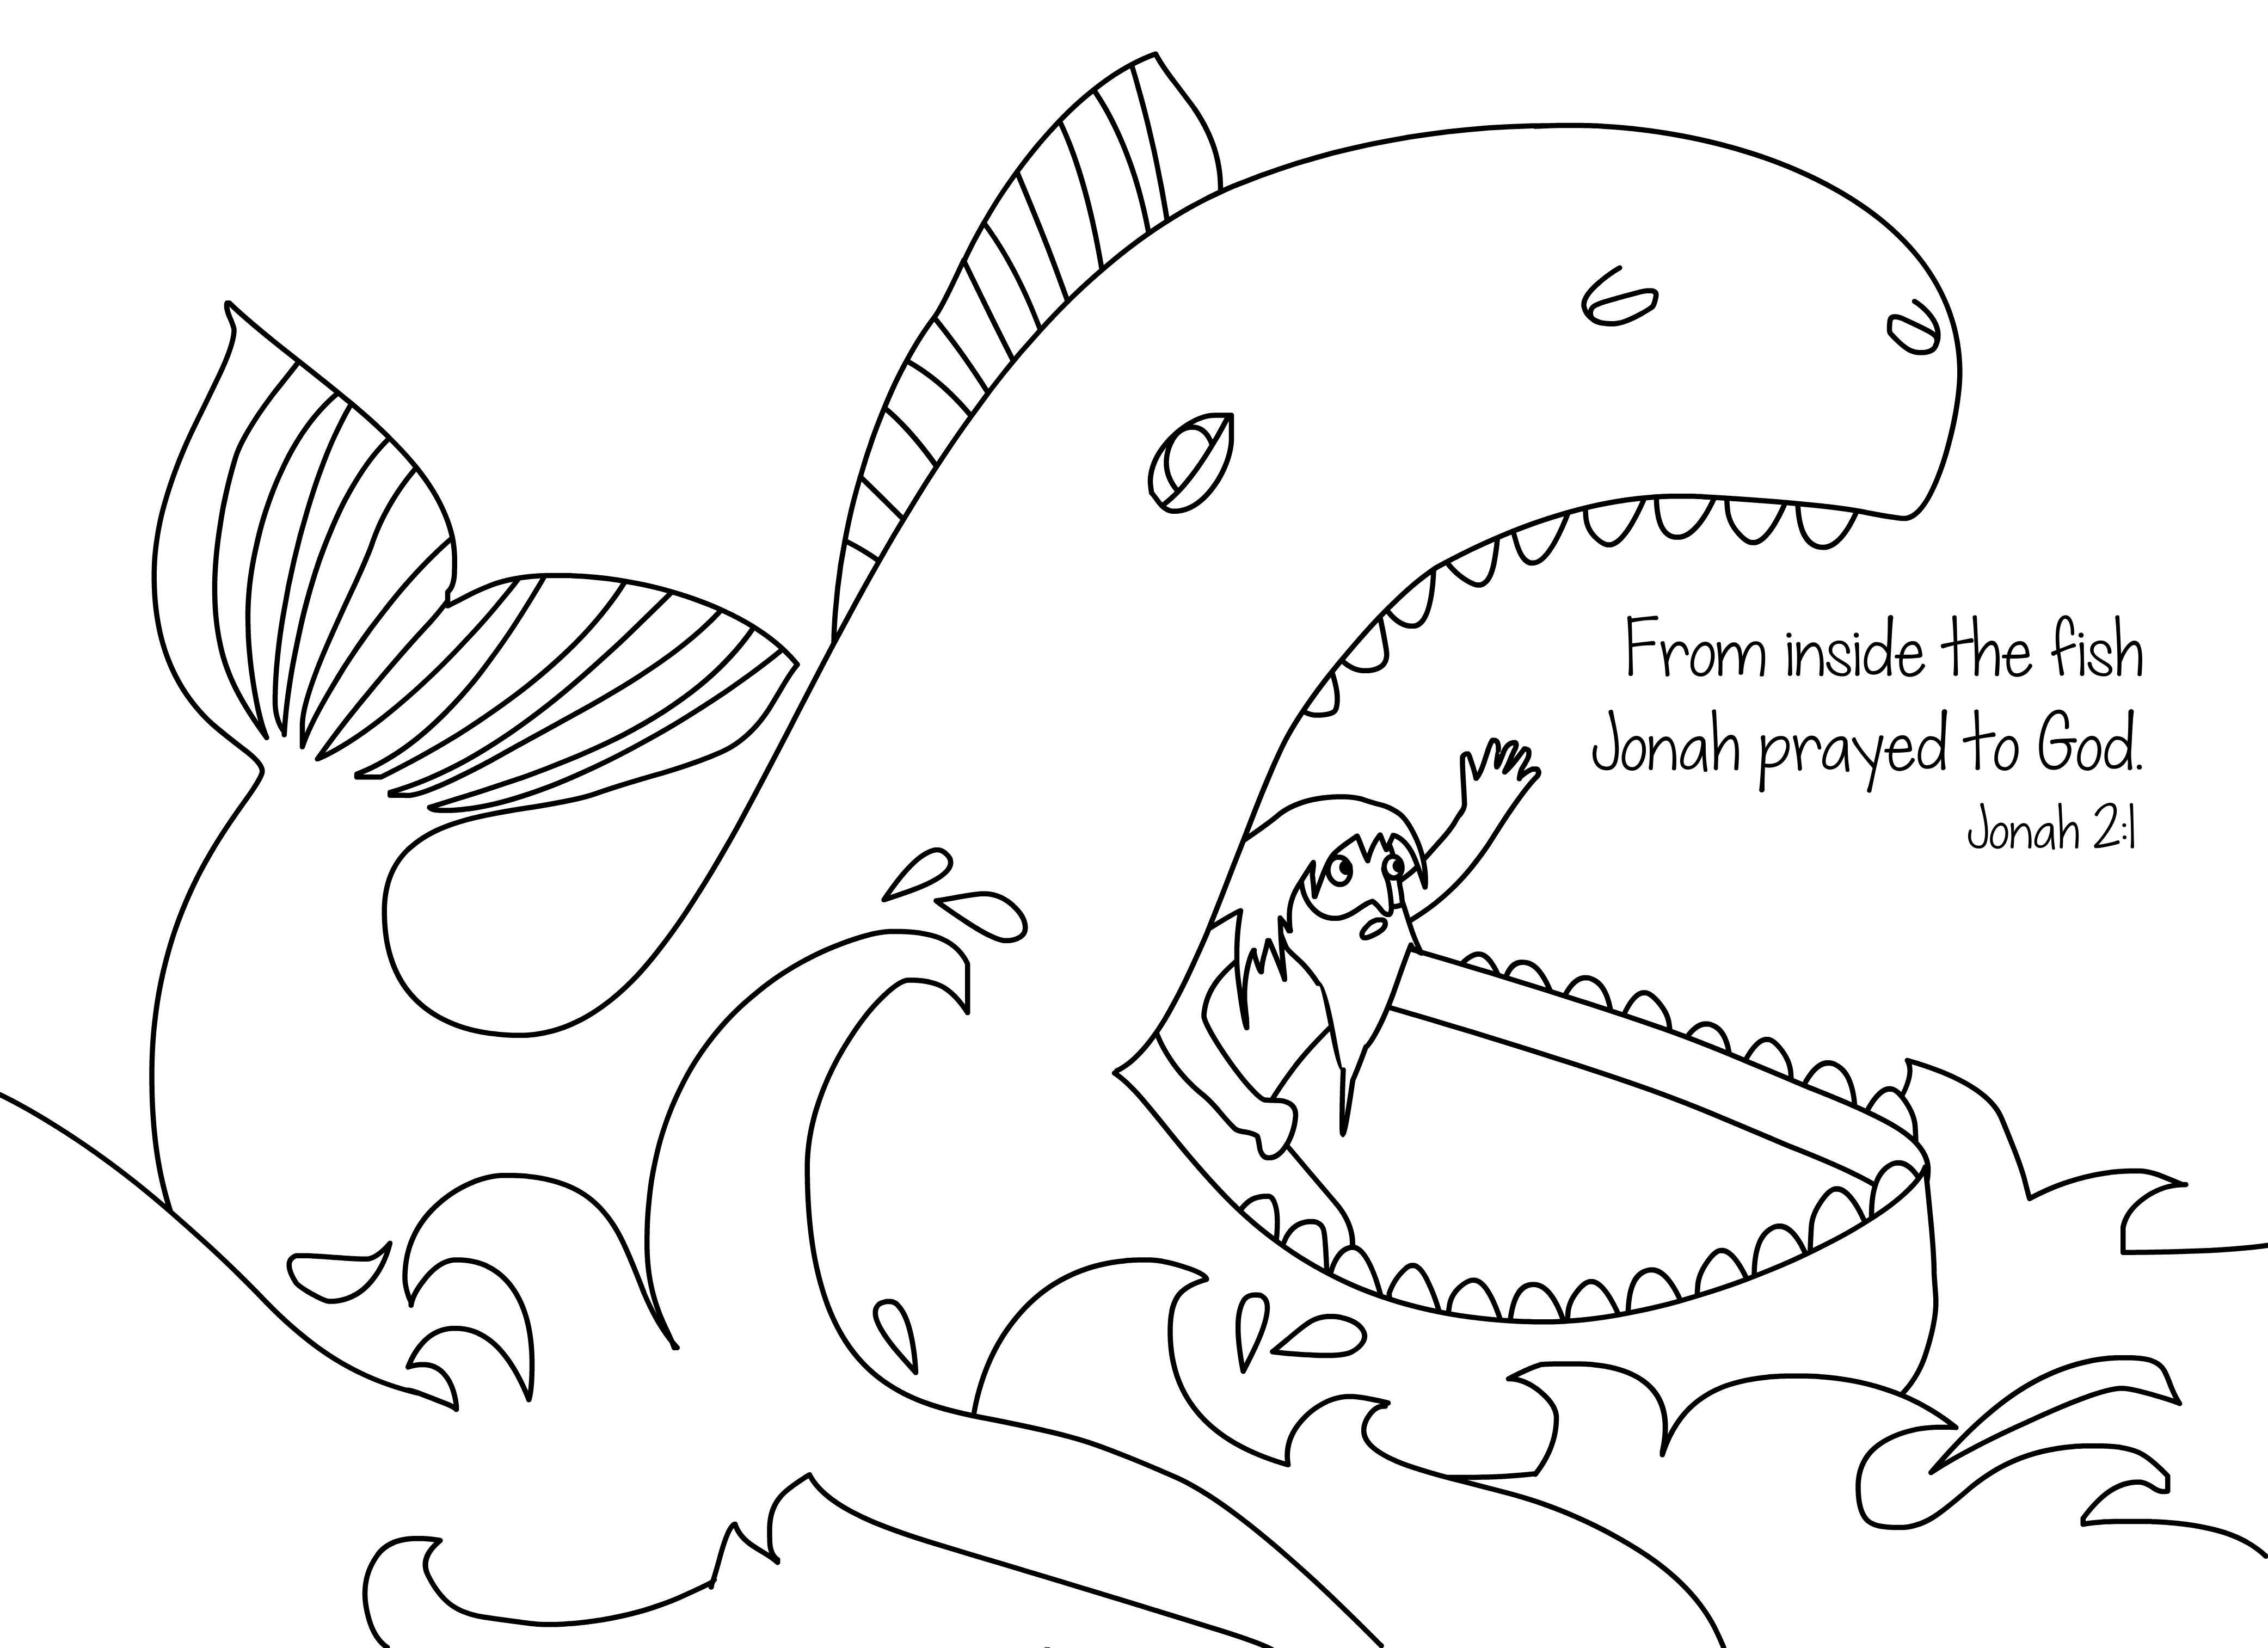 Jonah Coloring Page Free Download   Christian Coloring Pages